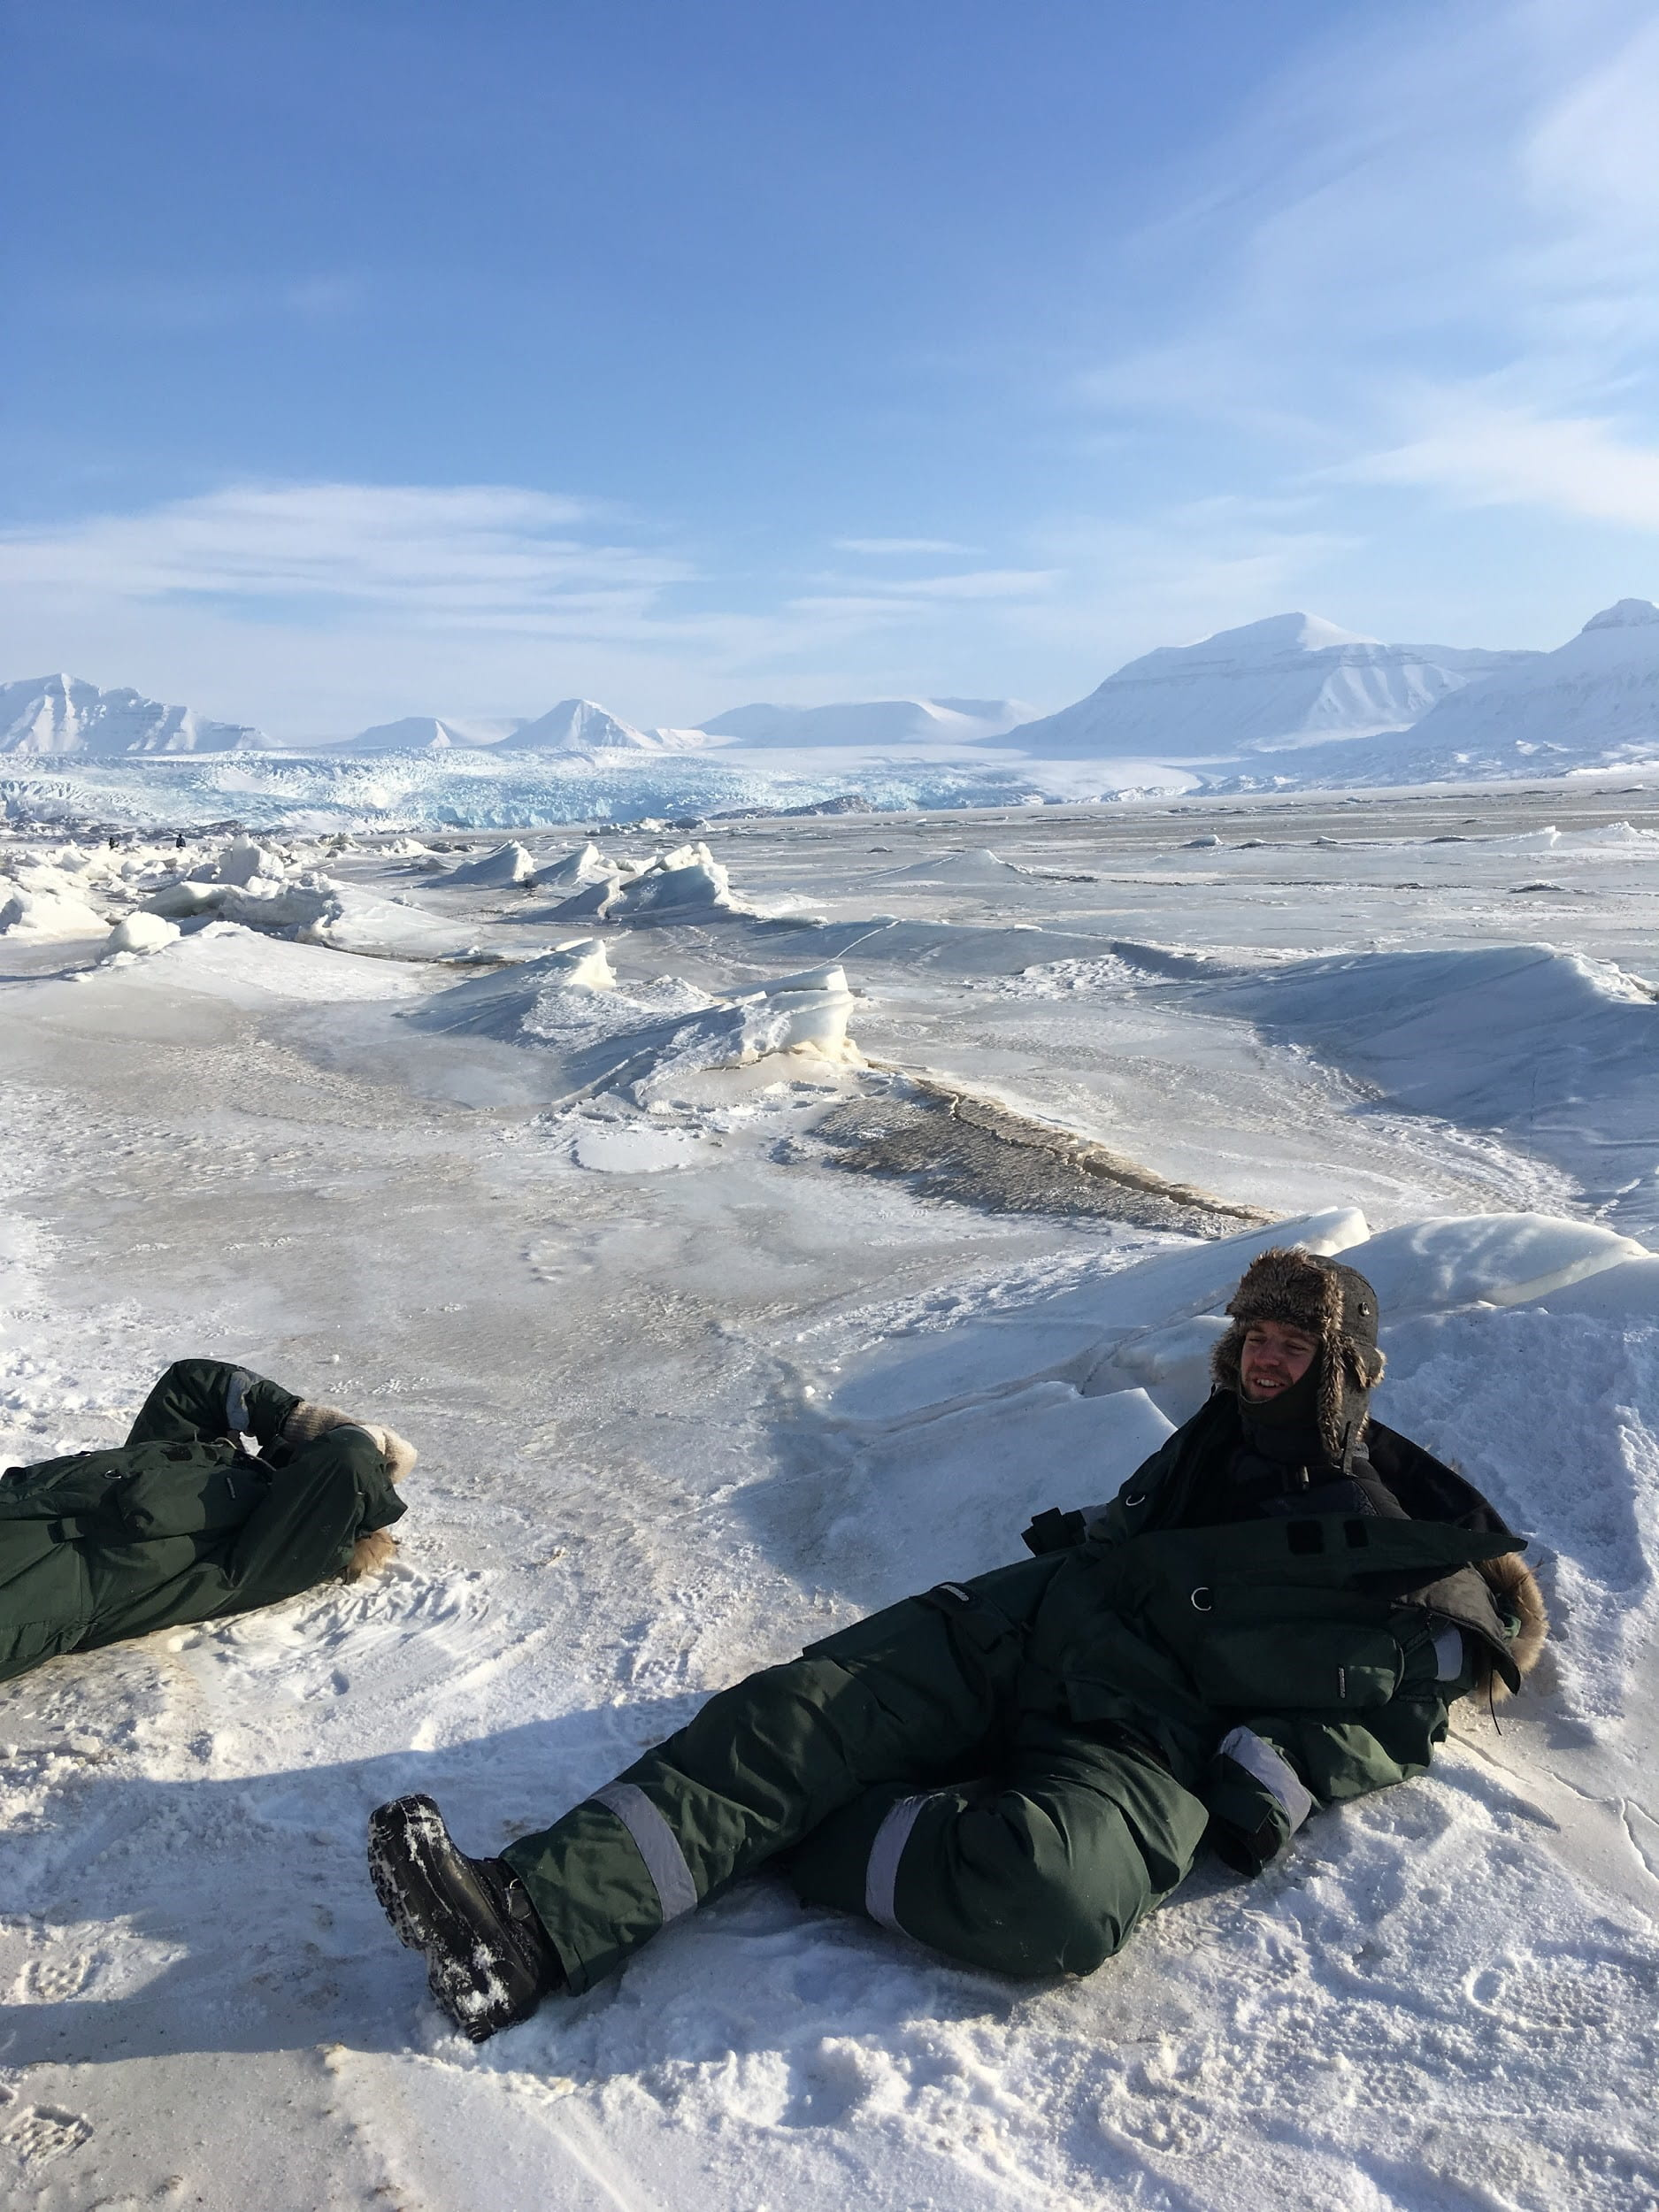 Two people bundled in winter clothing lounging on bed of snow and ice with blue sky in background